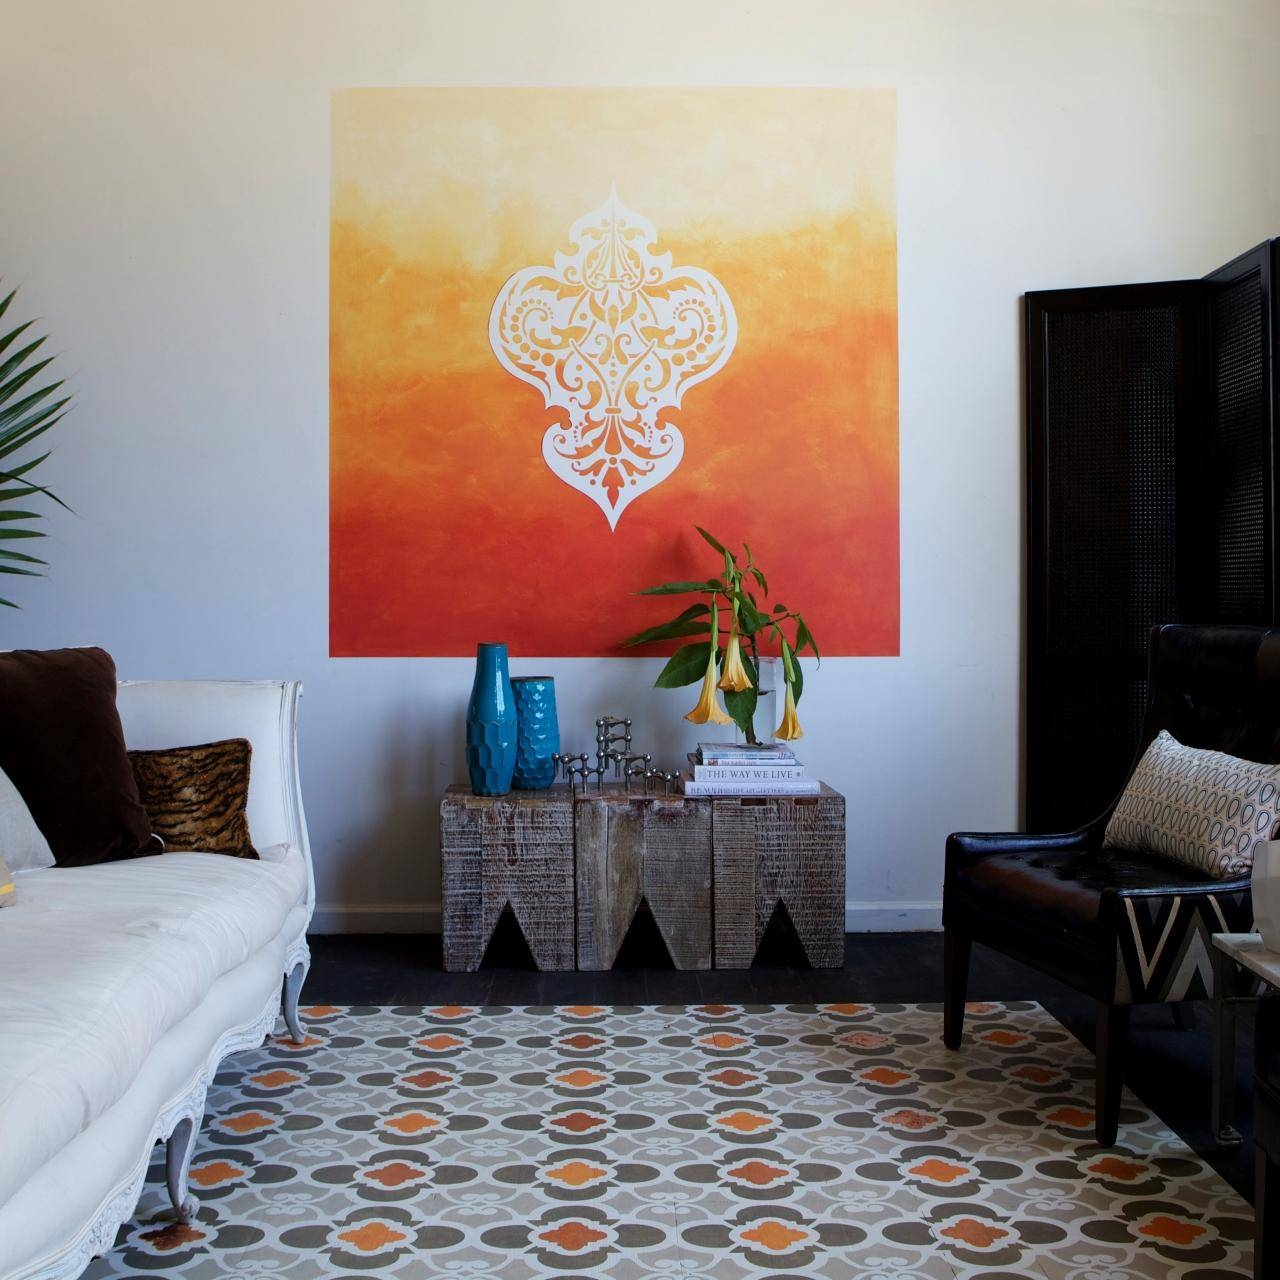 Learn How To Paint A Stenciled Ombre Wall Mural | How Tos | Diy Regarding Current Space Stencils For Walls (View 11 of 20)